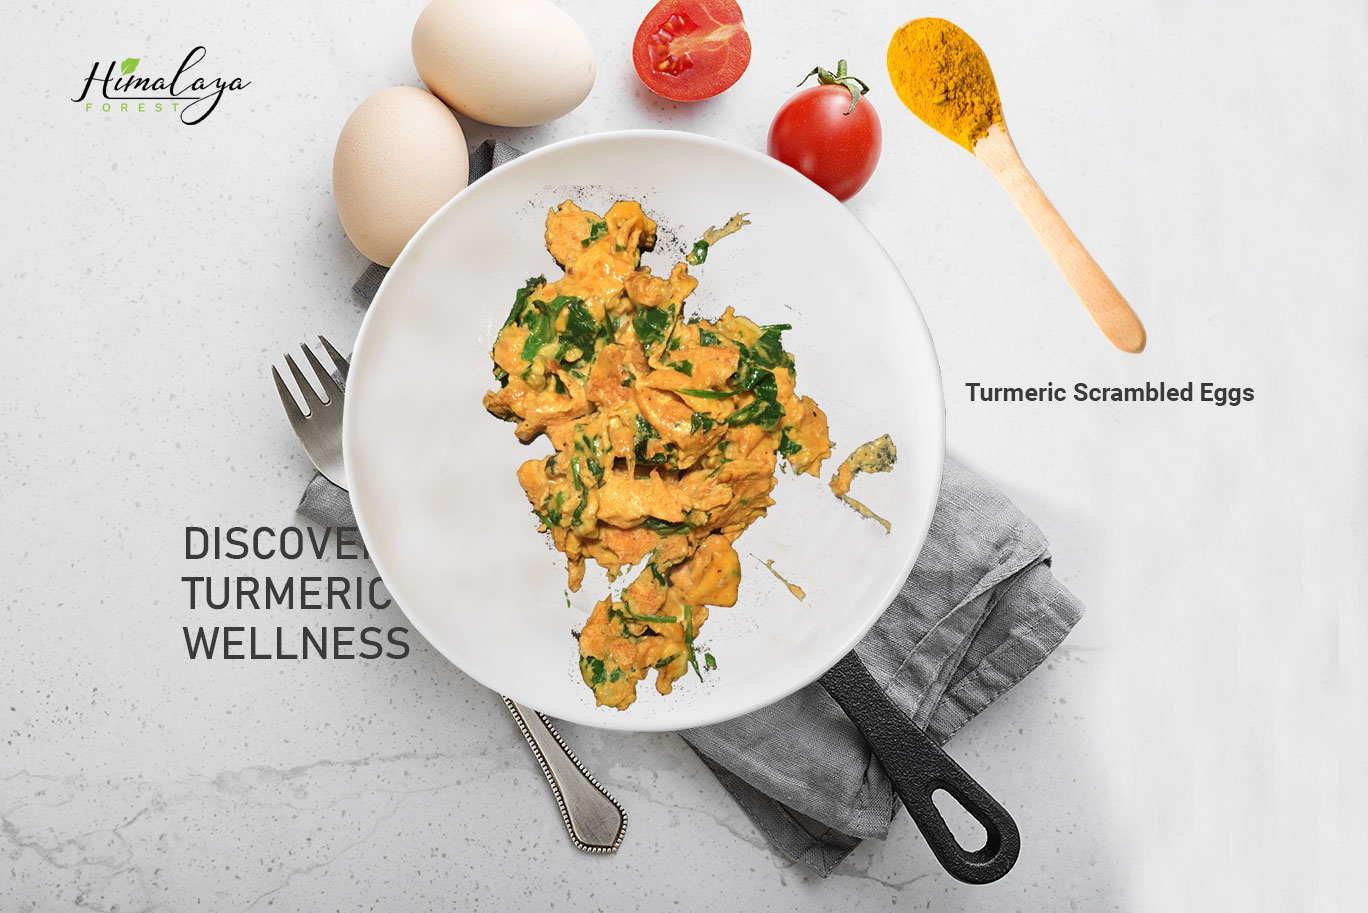 Super Healthy and Tasty Turmeric Scrambled Eggs